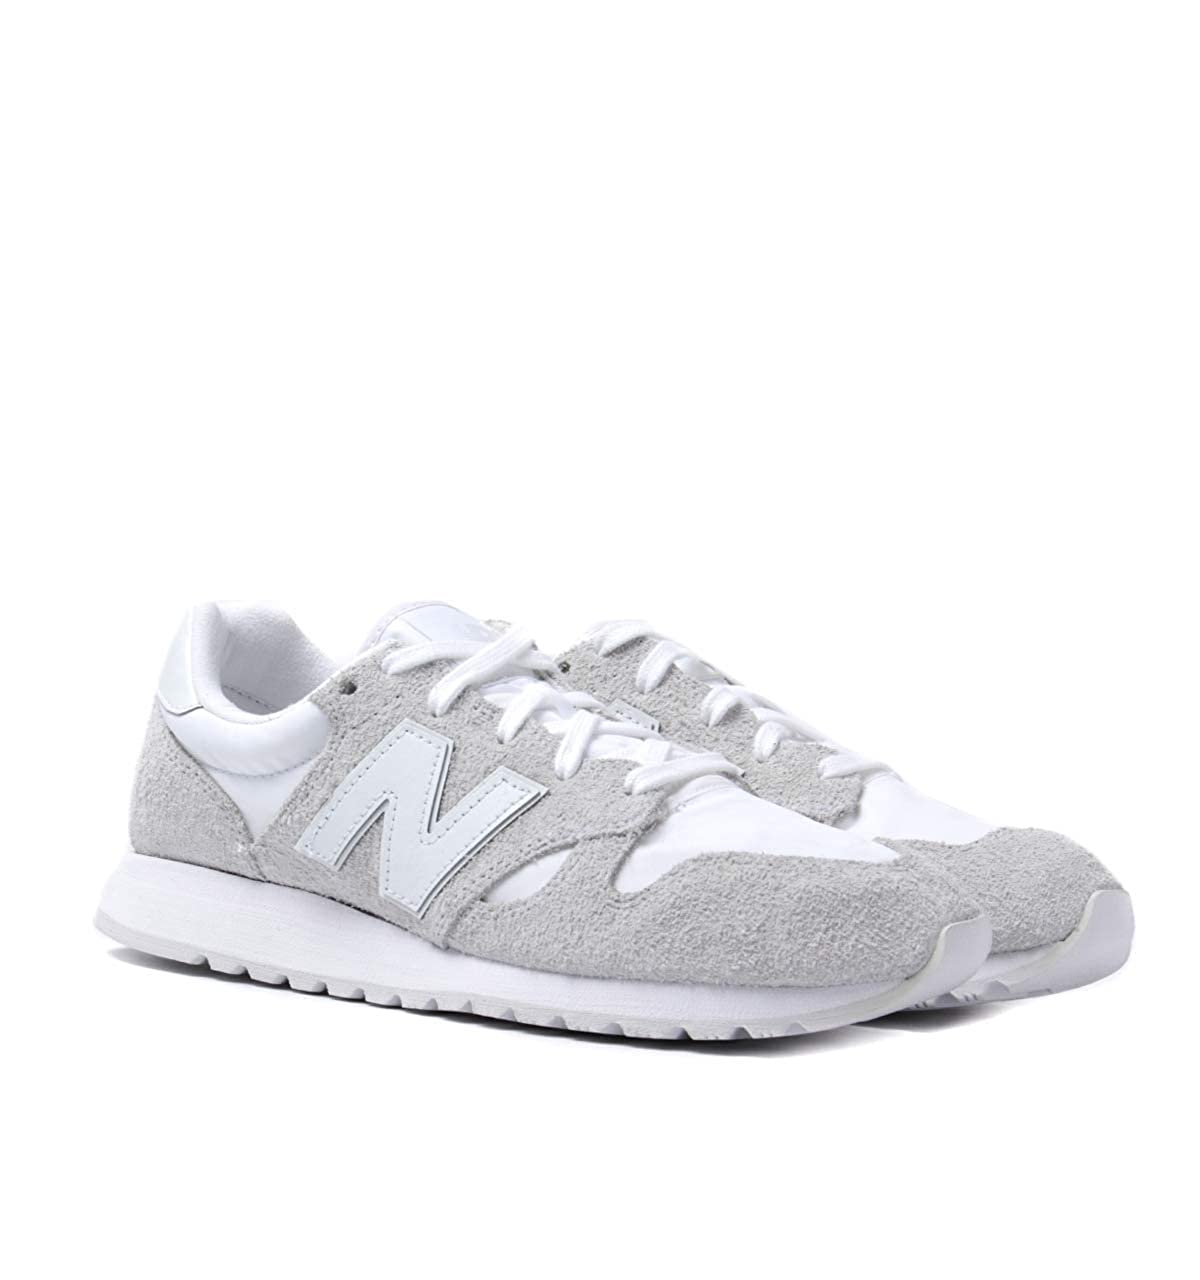 New Balance 520 grau Vintage Suede Suede Suede Trainers - UK 8 3a3872